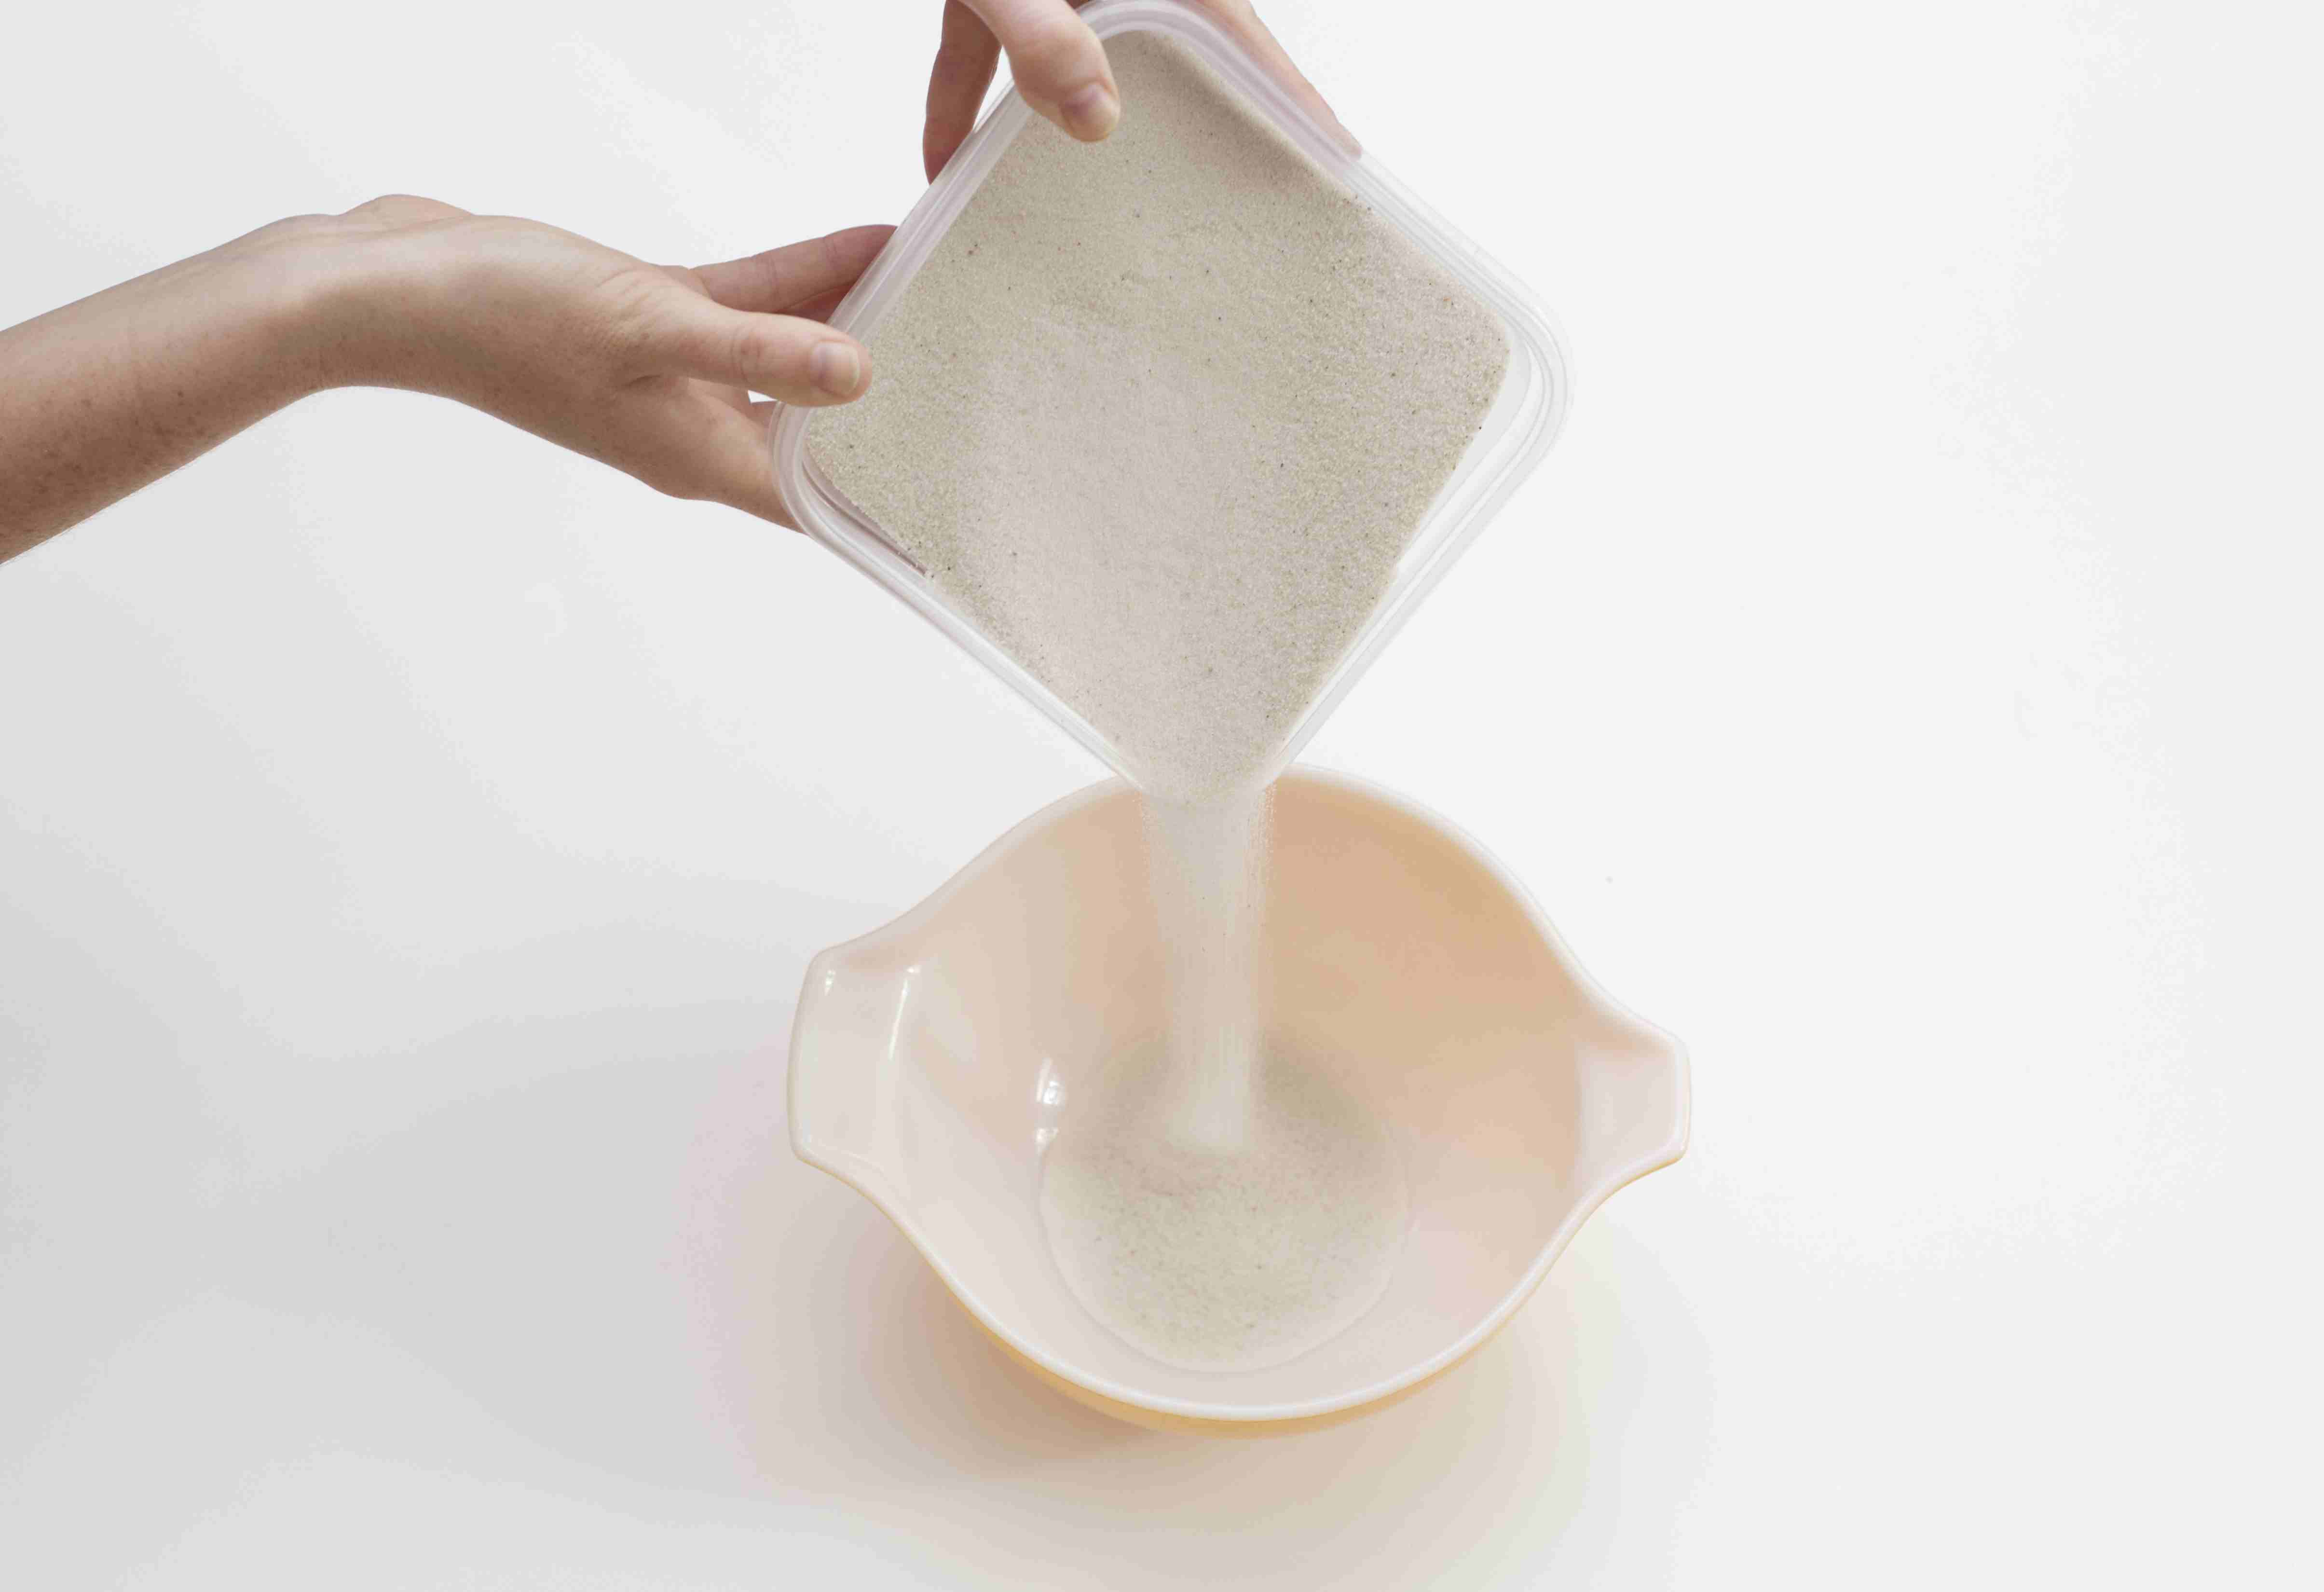 Pouring white sand into a bowl